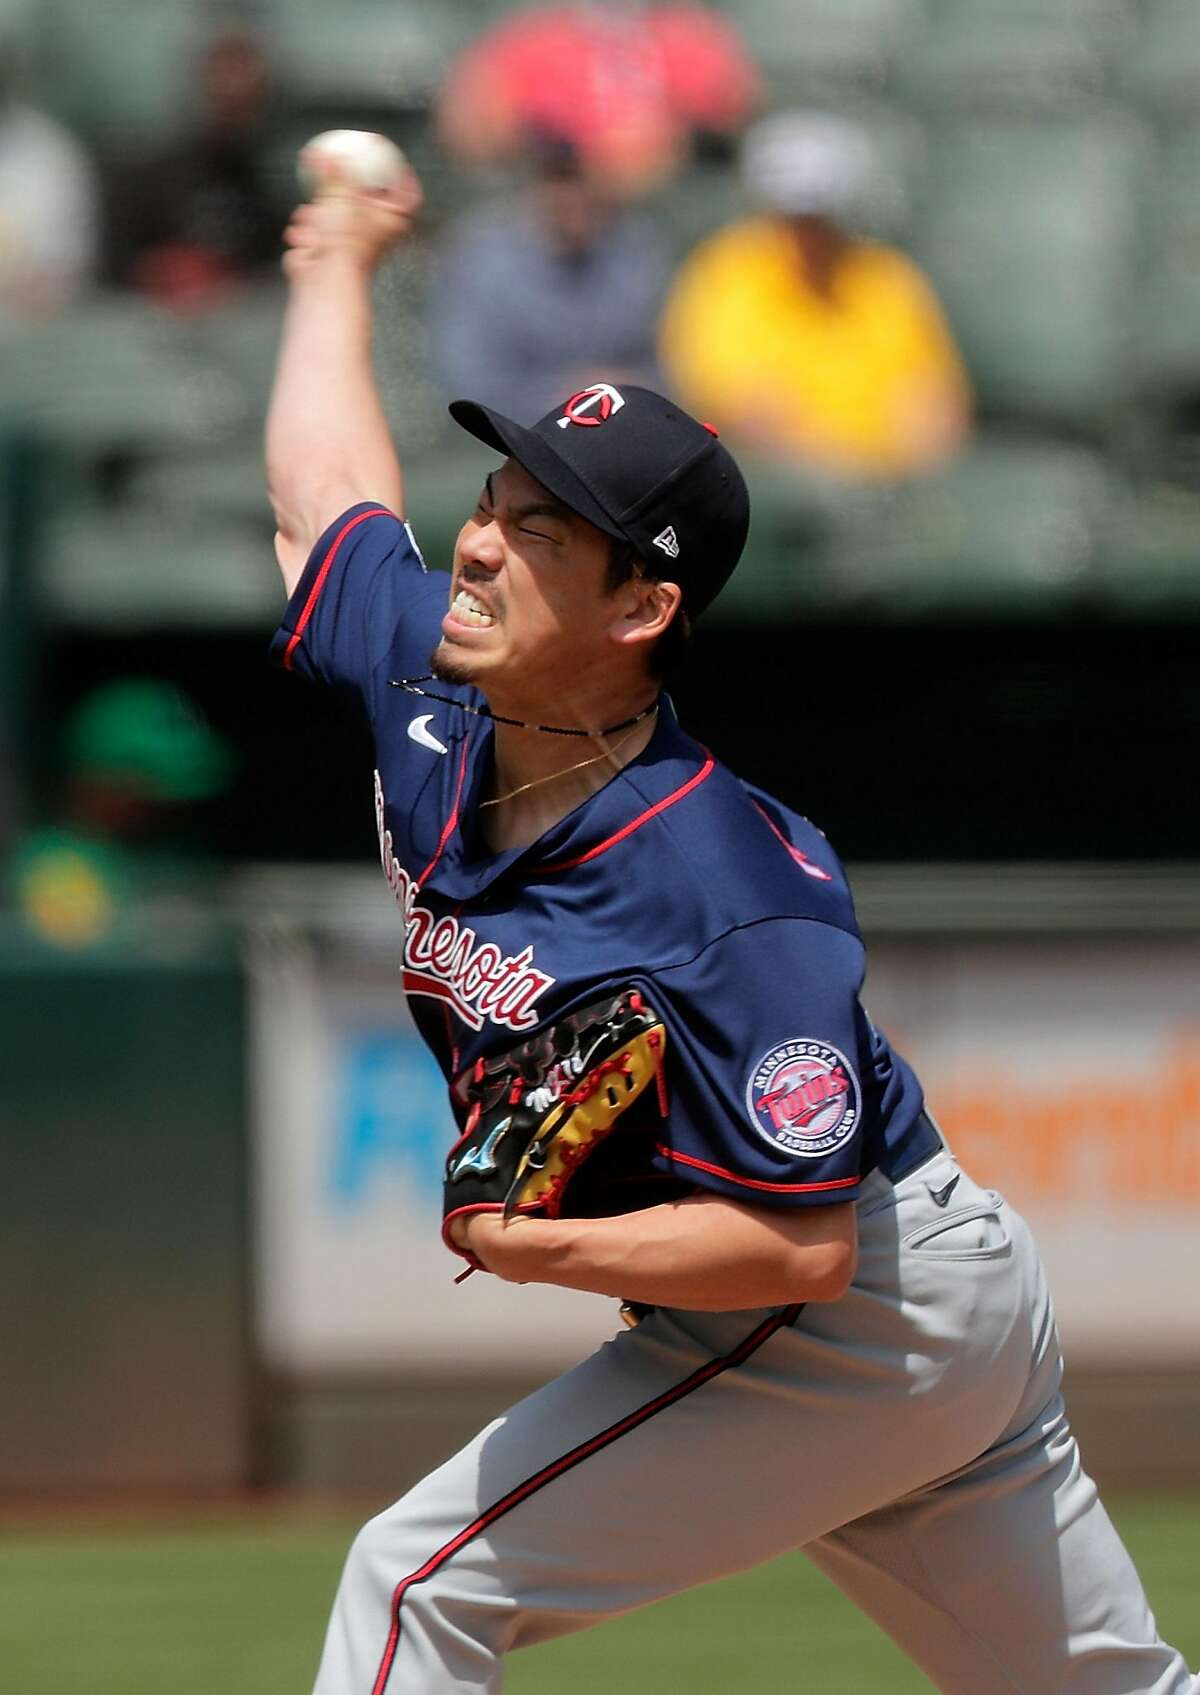 Kenta Maeda (18) pitches in the first inning as the Oakland Athletics played the Minnesota Twins at the Oakland Coliseum in Oakland, Calif., on Wednesday, April 21, 2021.